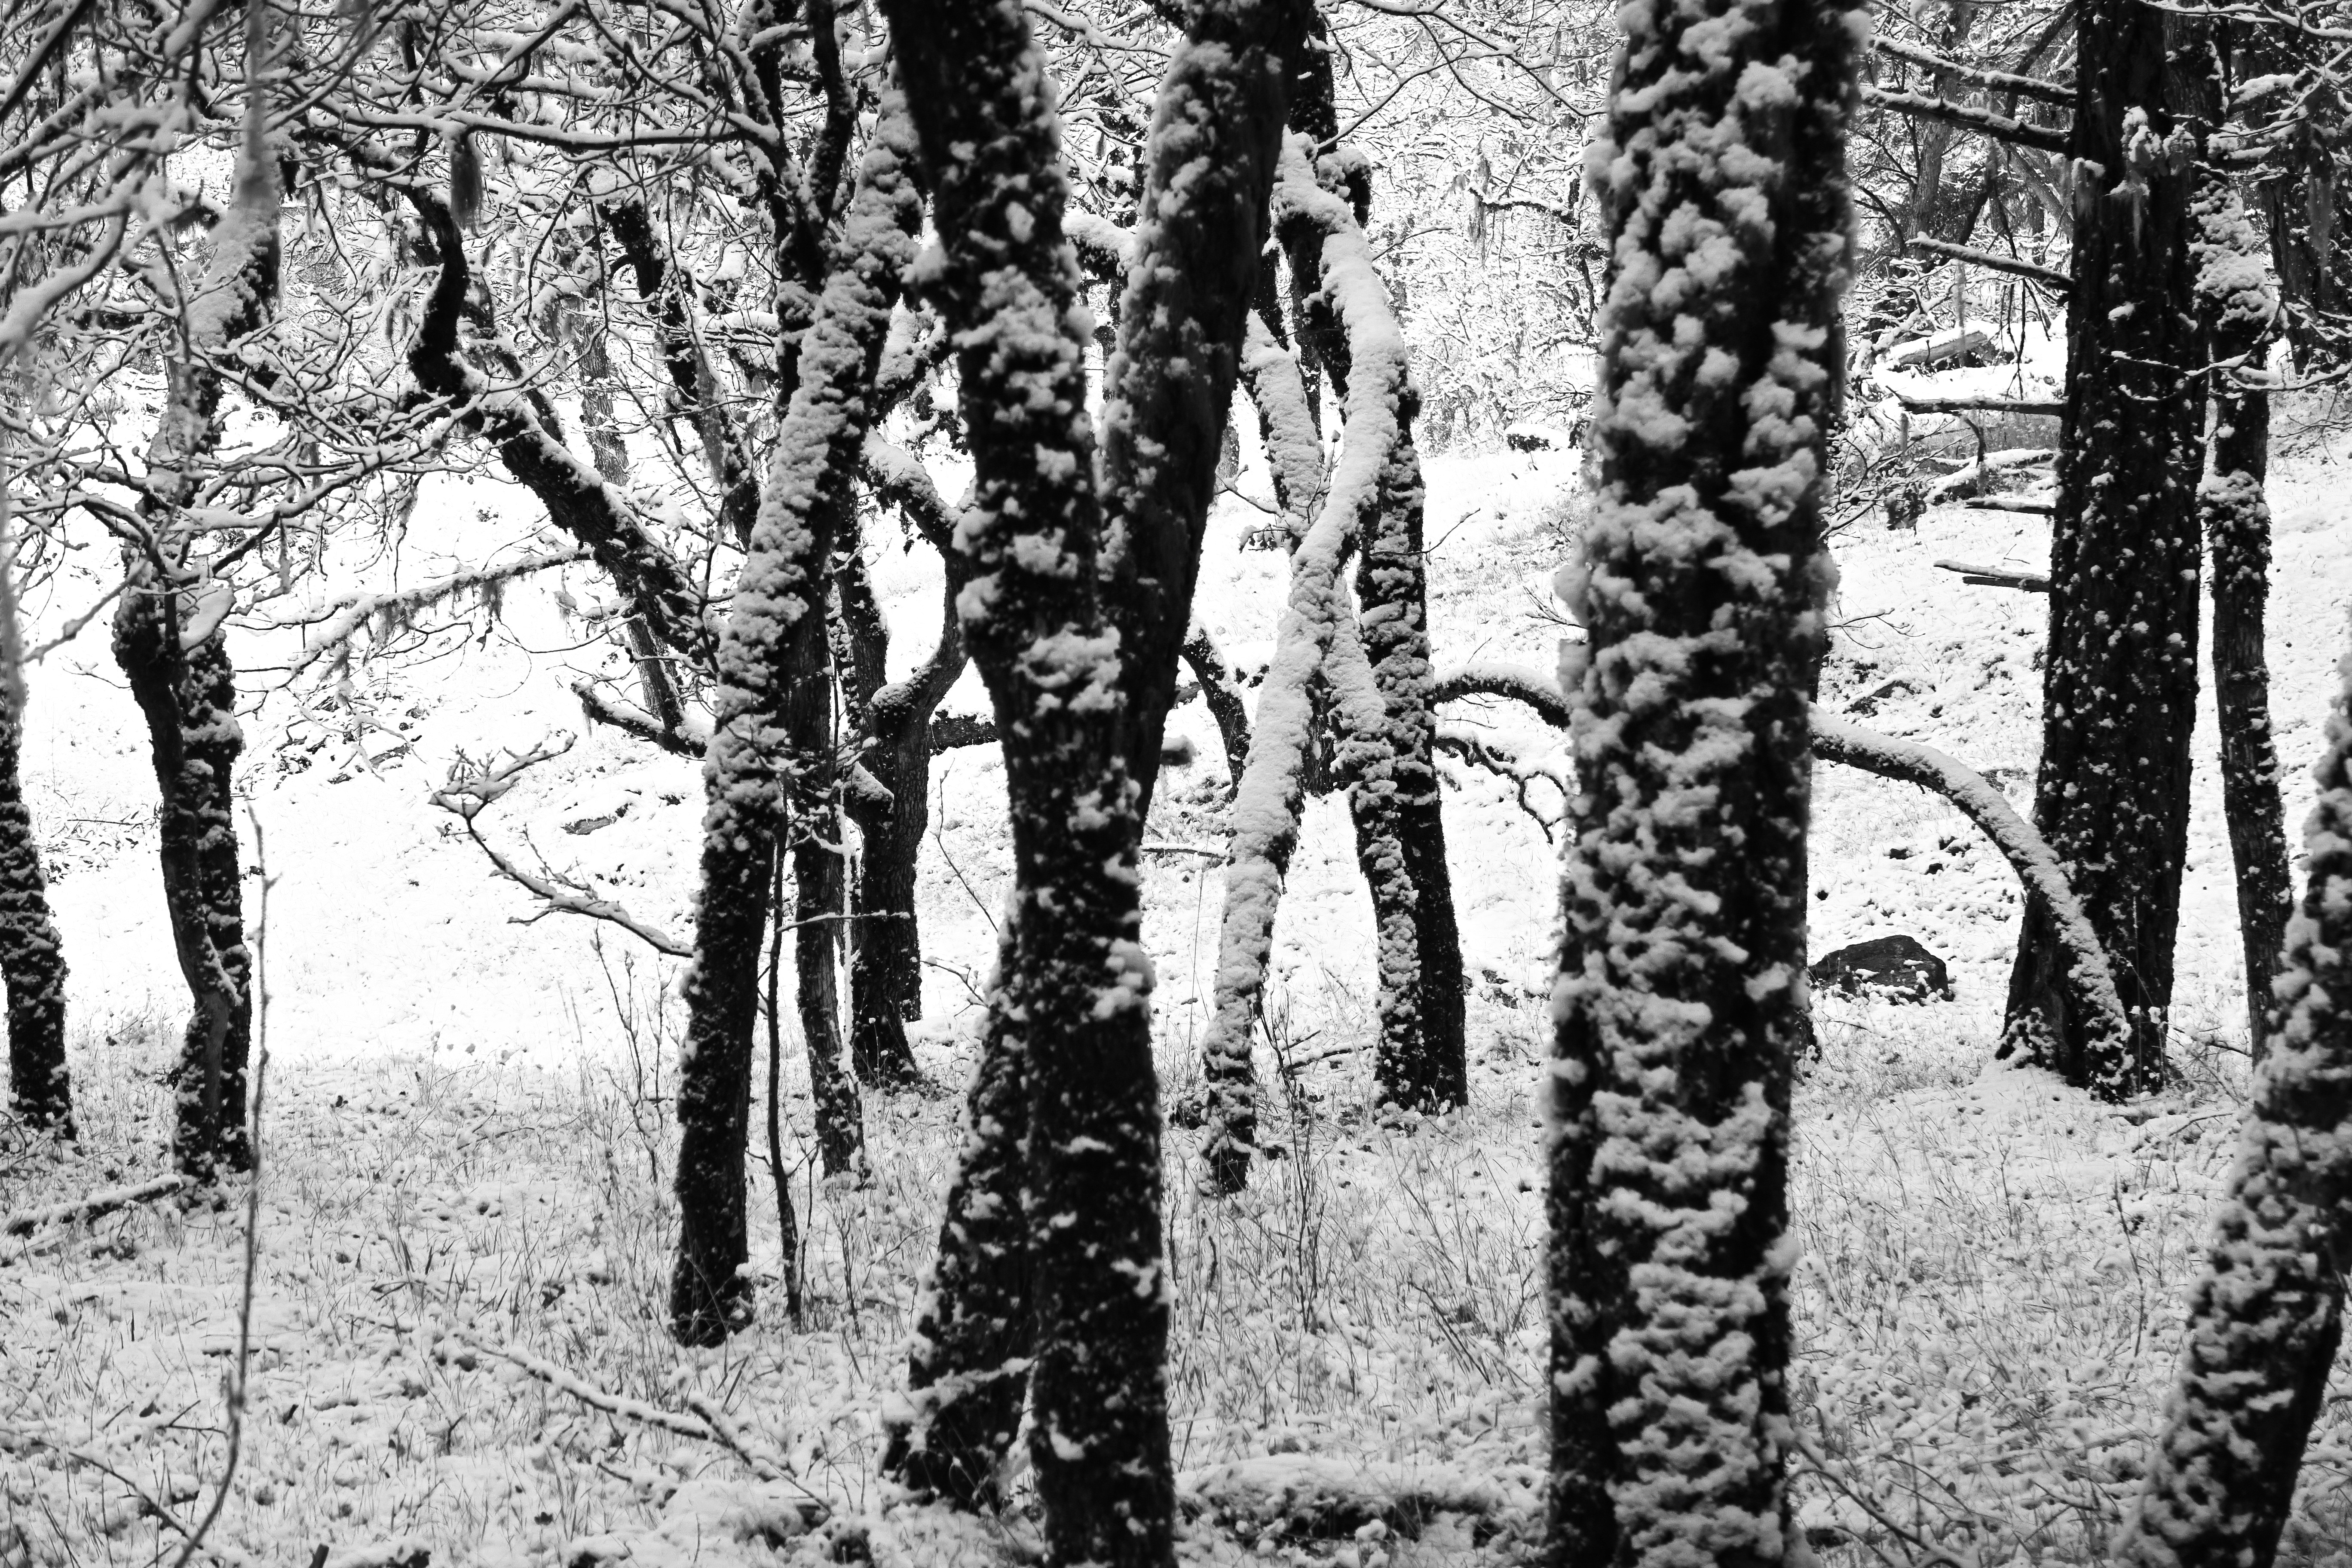 Black and white photo of trees in snow, Rogue River National Forest